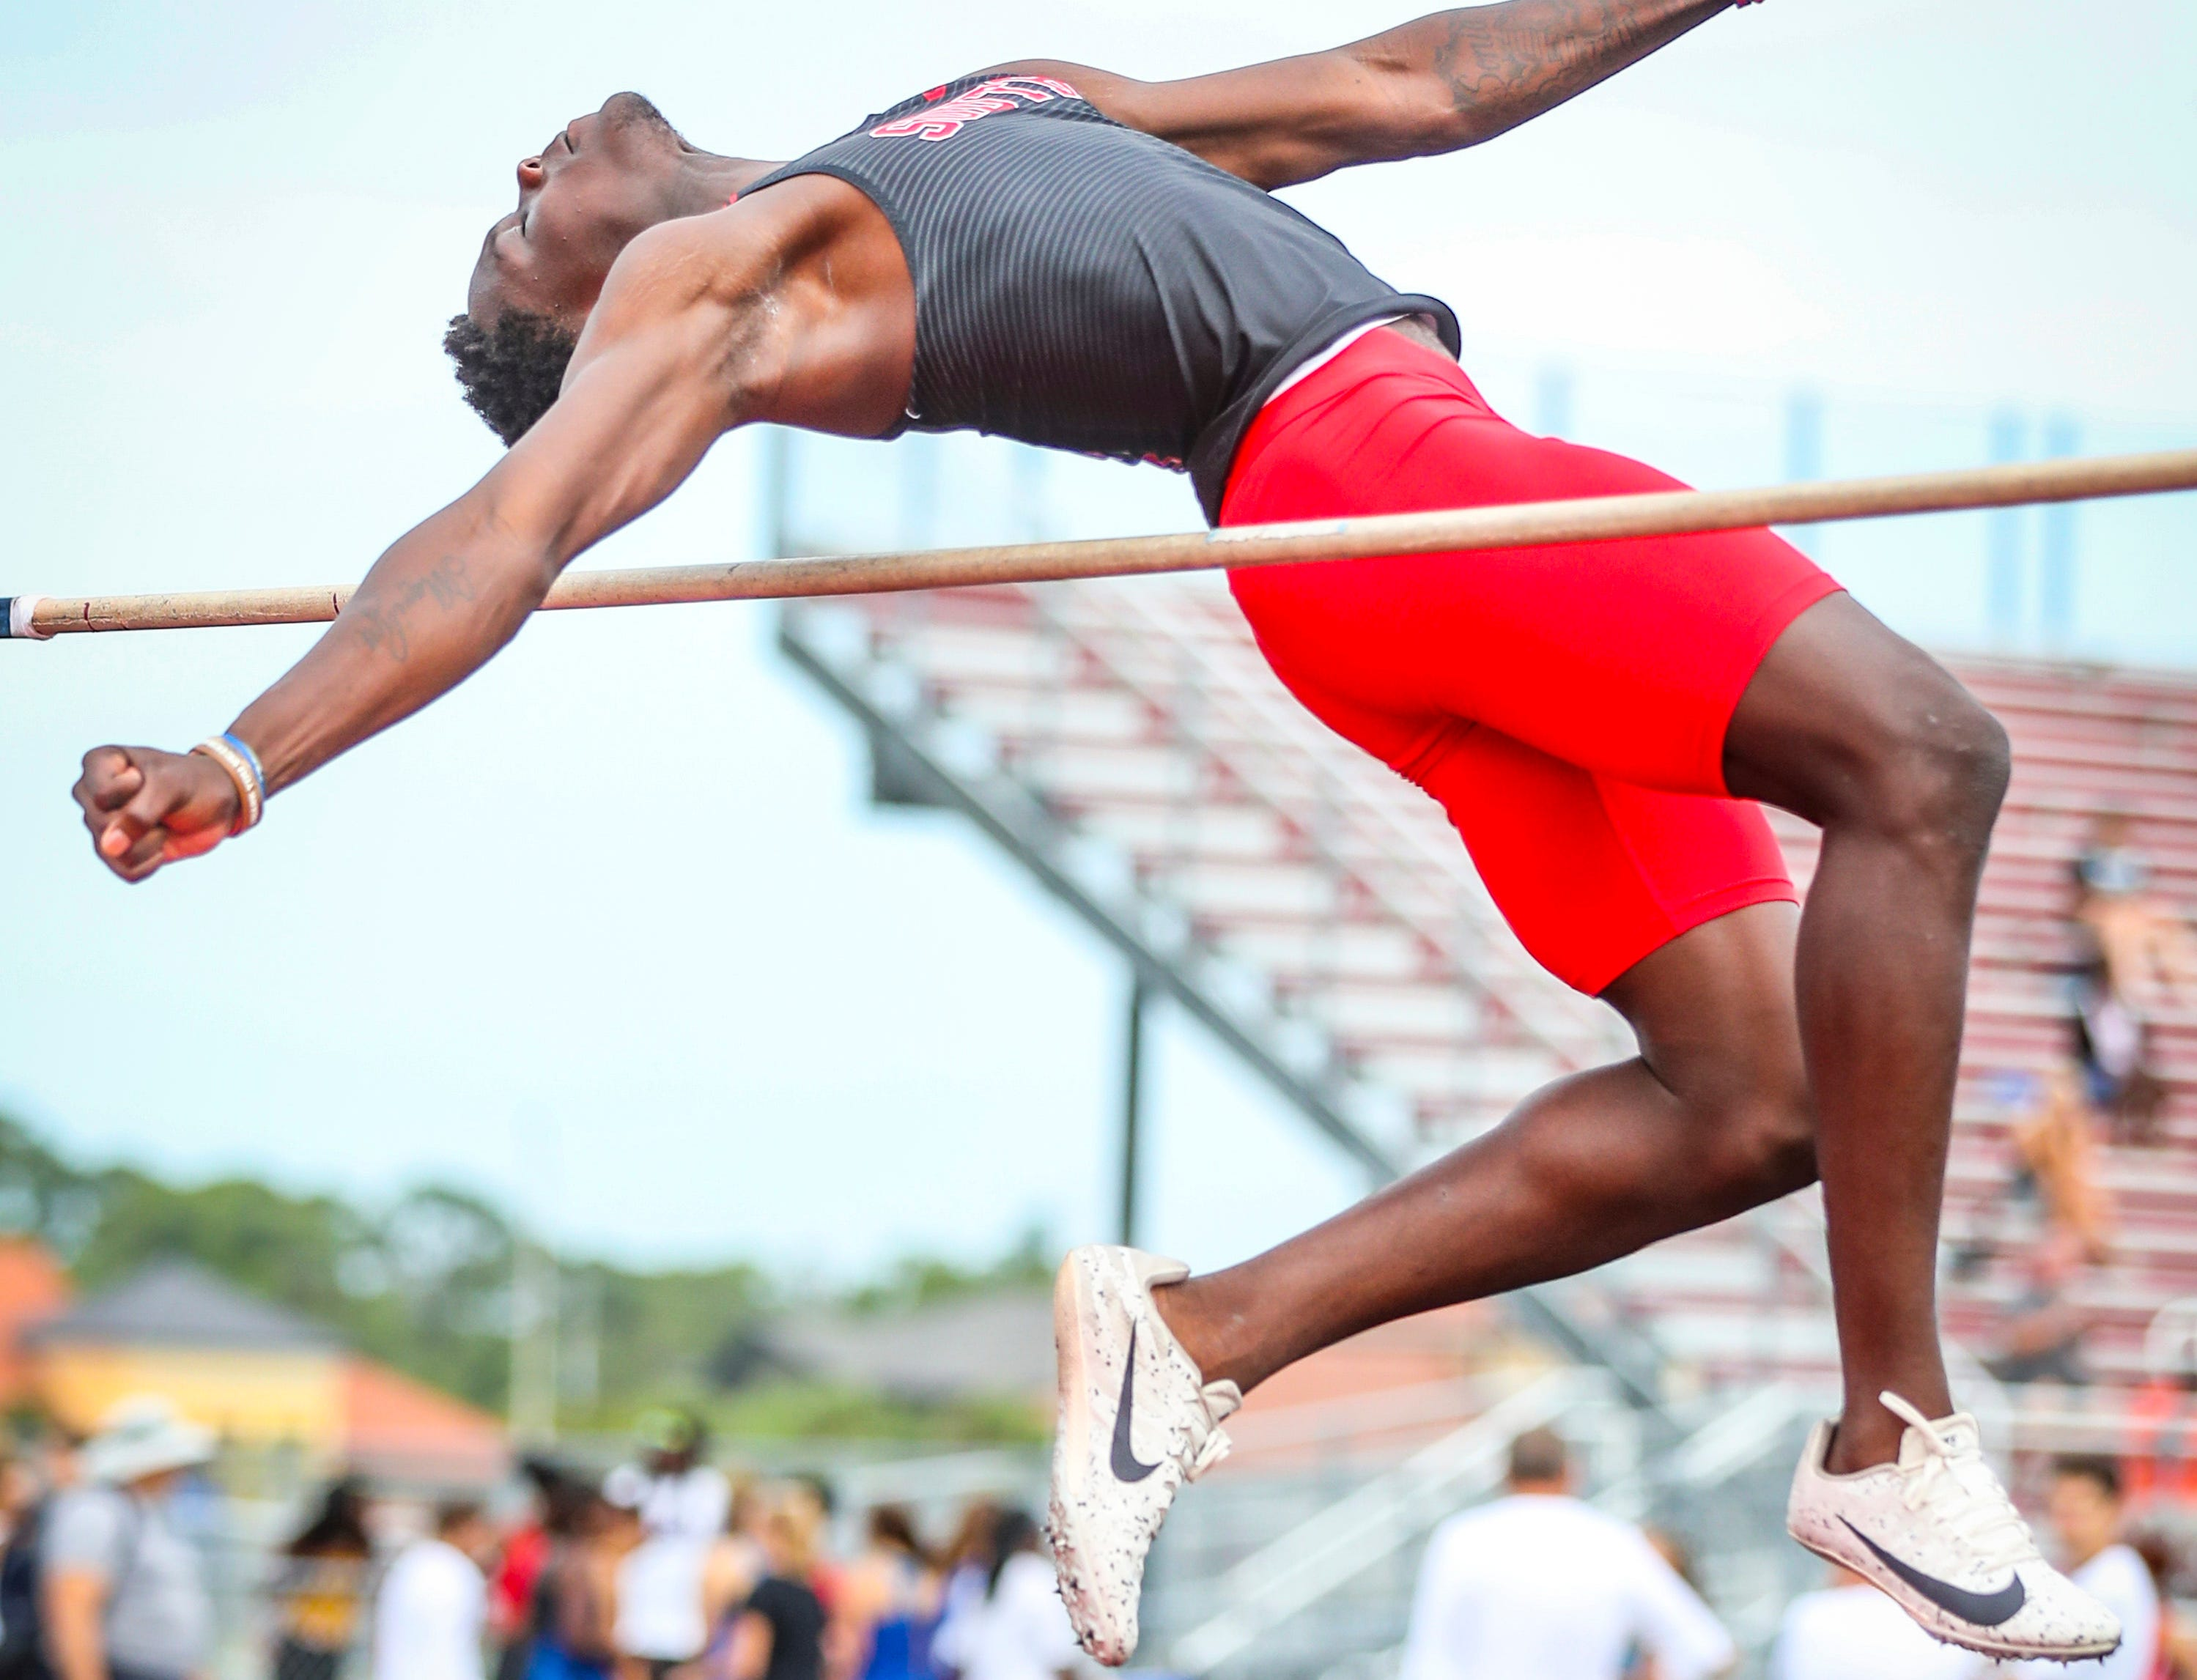 4th place, Julian Durham